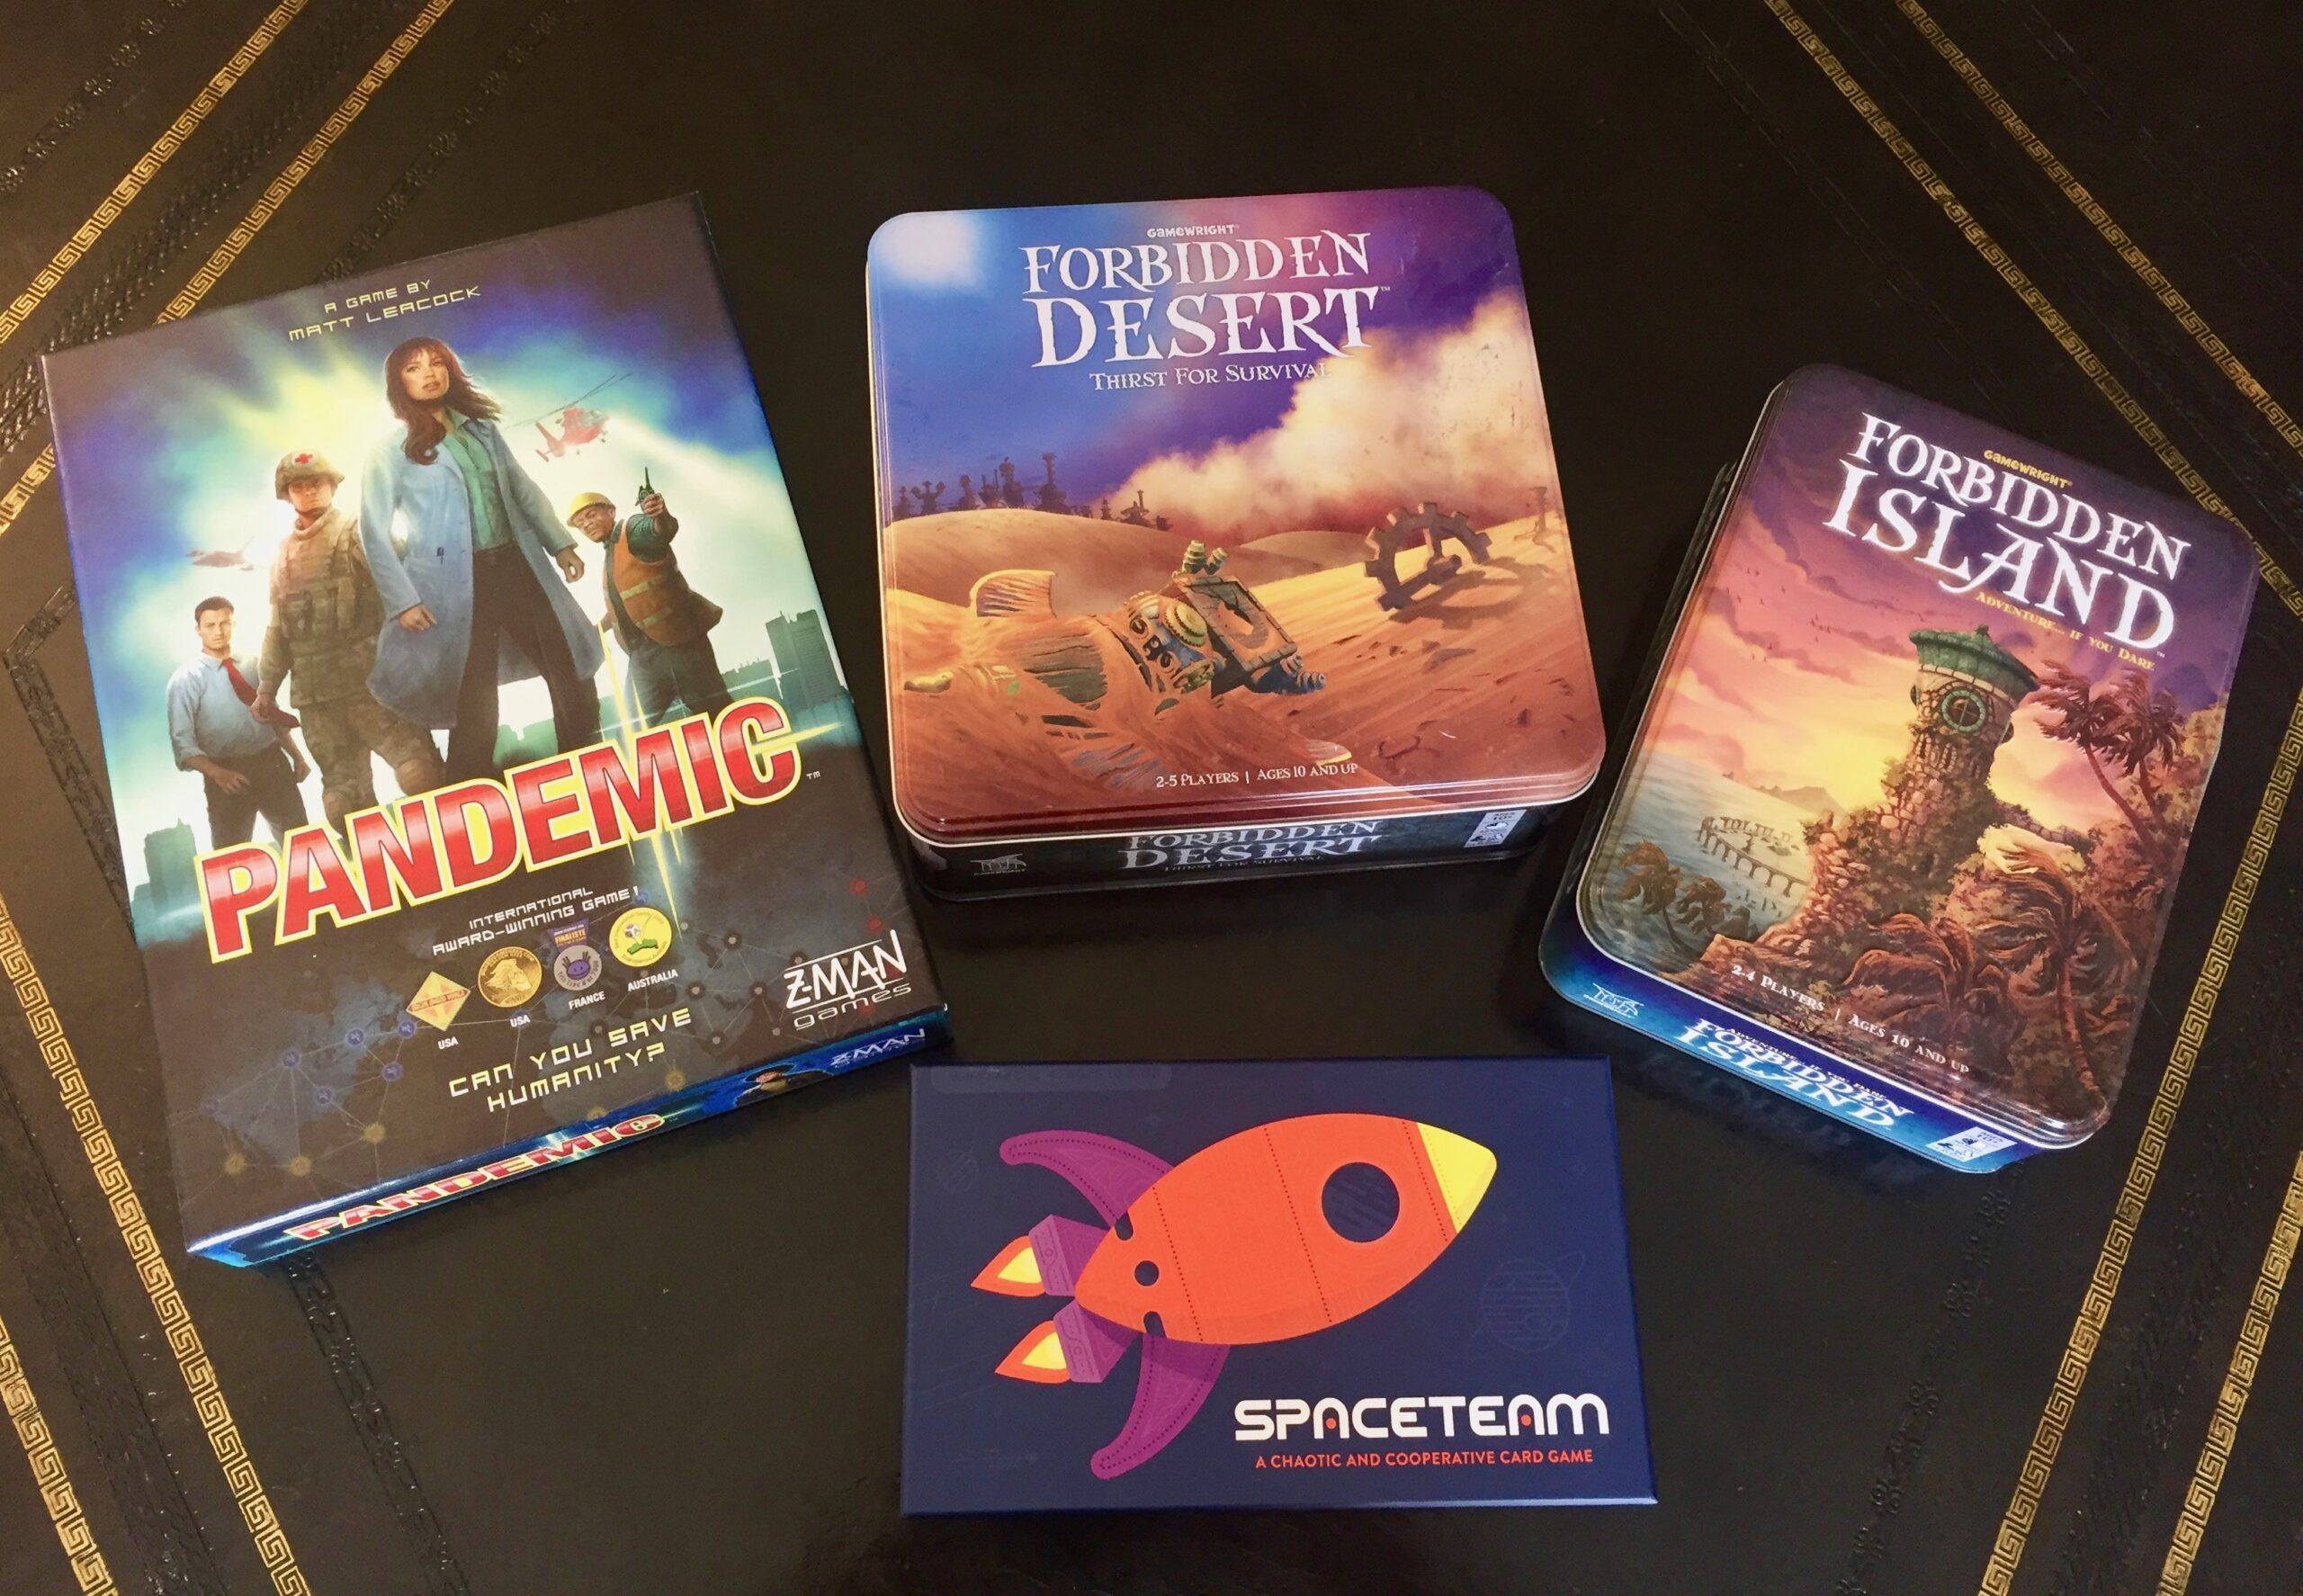 Pandemic, Forbidden Desert, Forbidden Island, and SpaceTeam